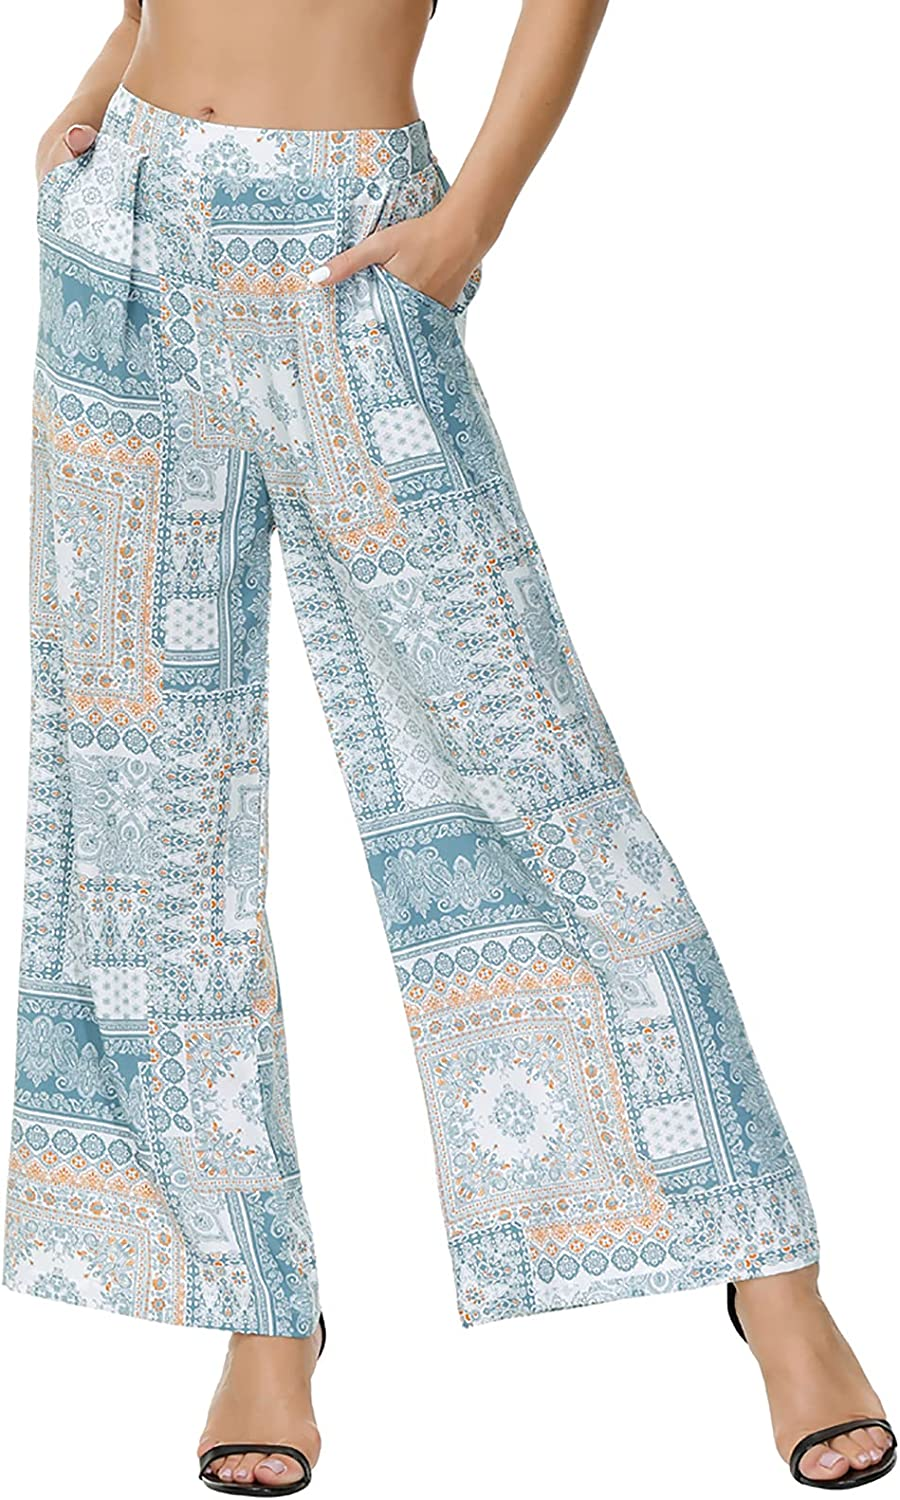 Zexxxy Womens Paisley Printed Wide Leg Pants Elastic Waist Casual Trousers with Pockets Loose Comfy Bottoms